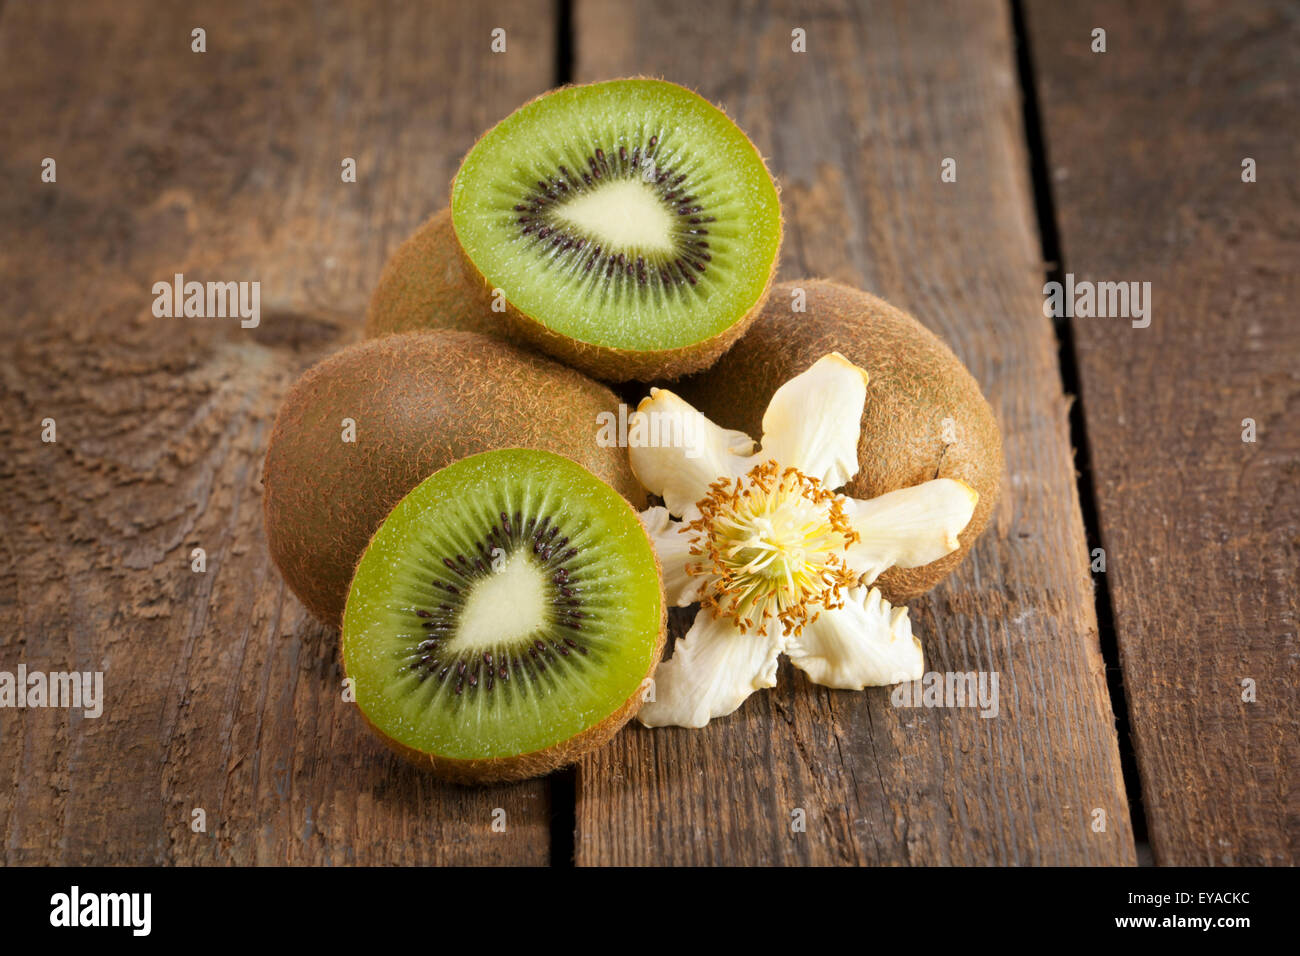 Kiwi fruits with their blossom on rustic wooden background - Stock Image